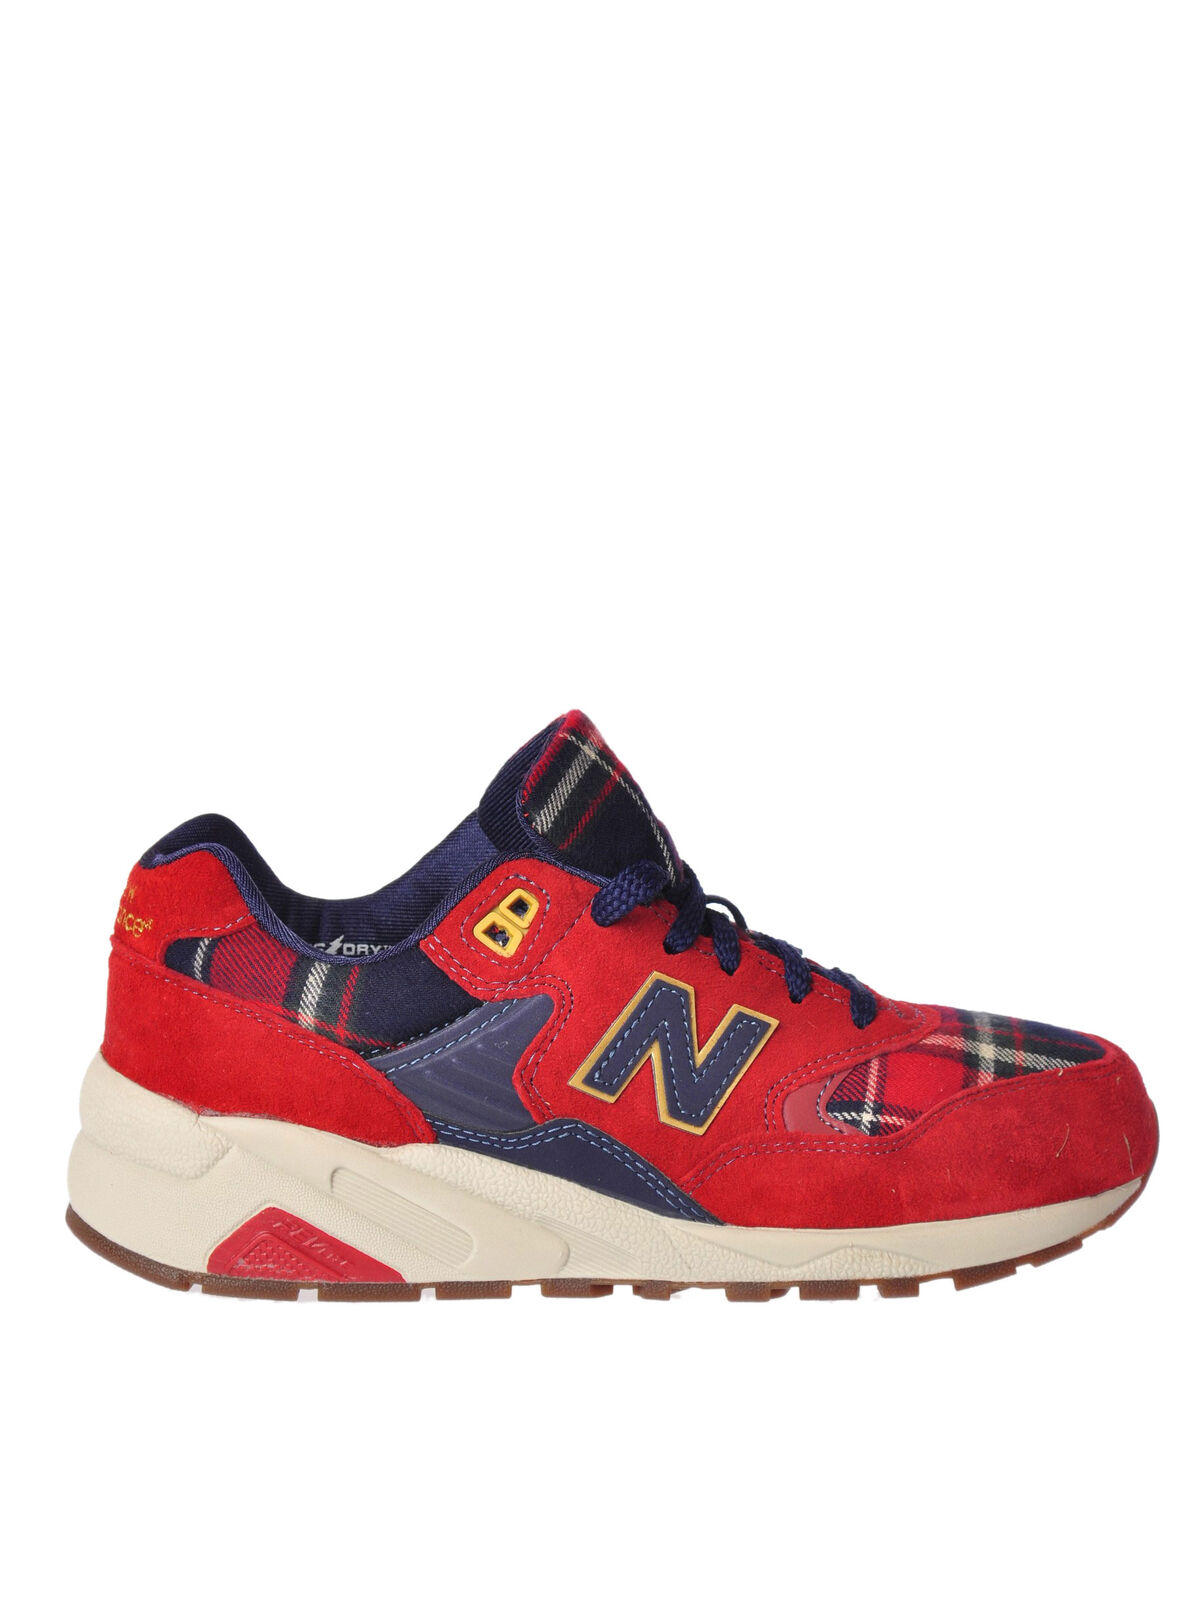 New Balance - Shoes-Sneakers low - Woman - Red - 442818G180534